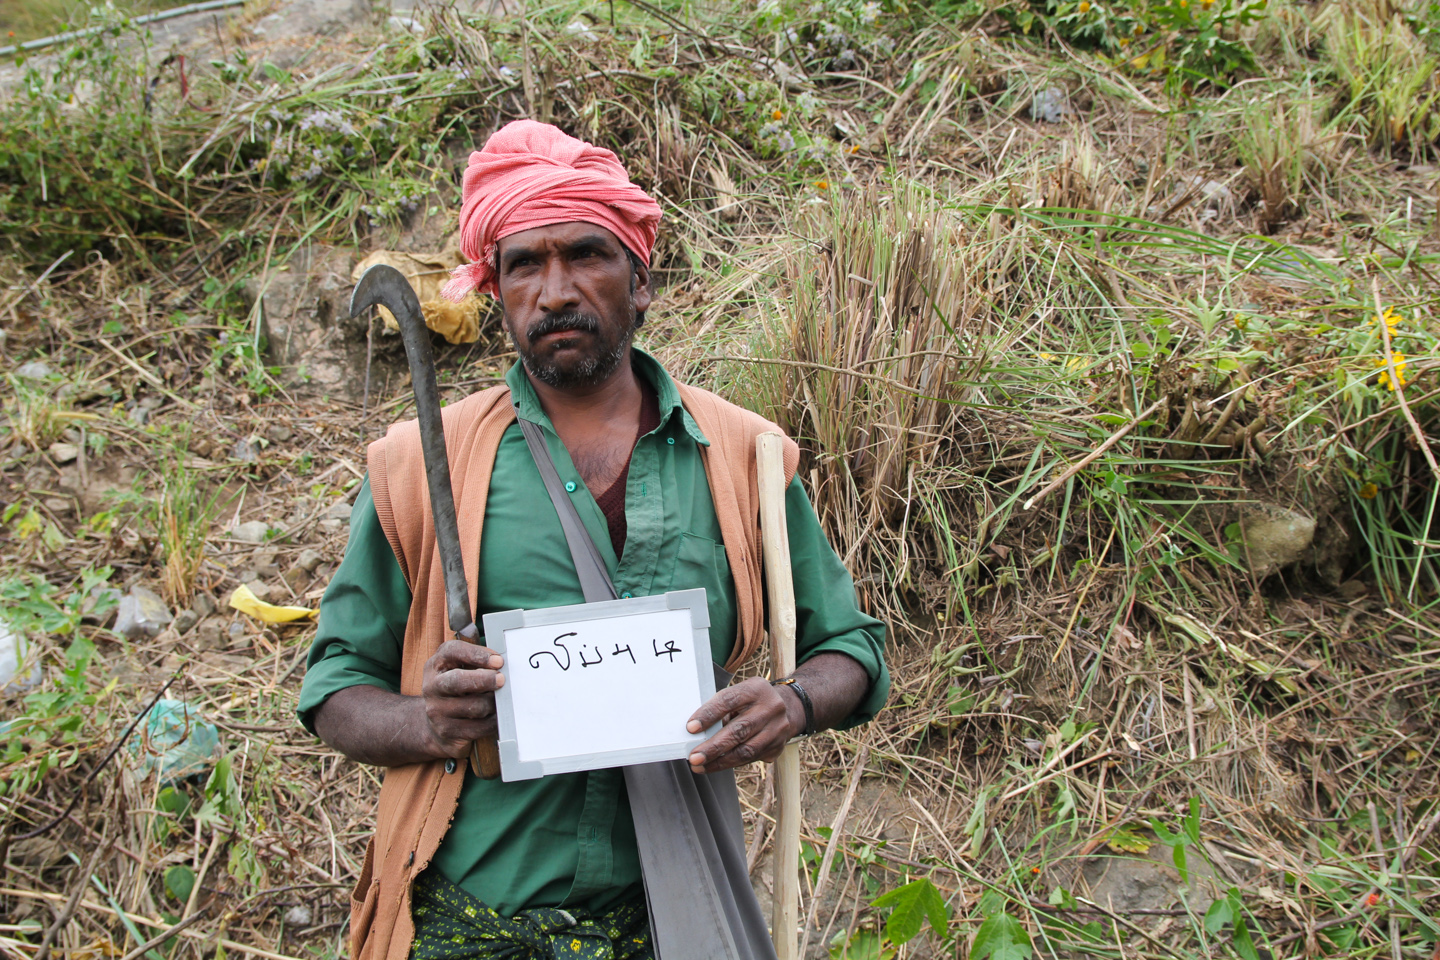 Sivendra, an adivasi, or tribal person, living near Surianalle in the hills of Kerala, clears shrubs from the roadside as part of NREGA, a statute guaranteeing work for rural Indians. With tea estates blanketing the land as far as the eye can see, it comes as no surprise that Sivendra thinks of tea leaves when he hears the word chai.